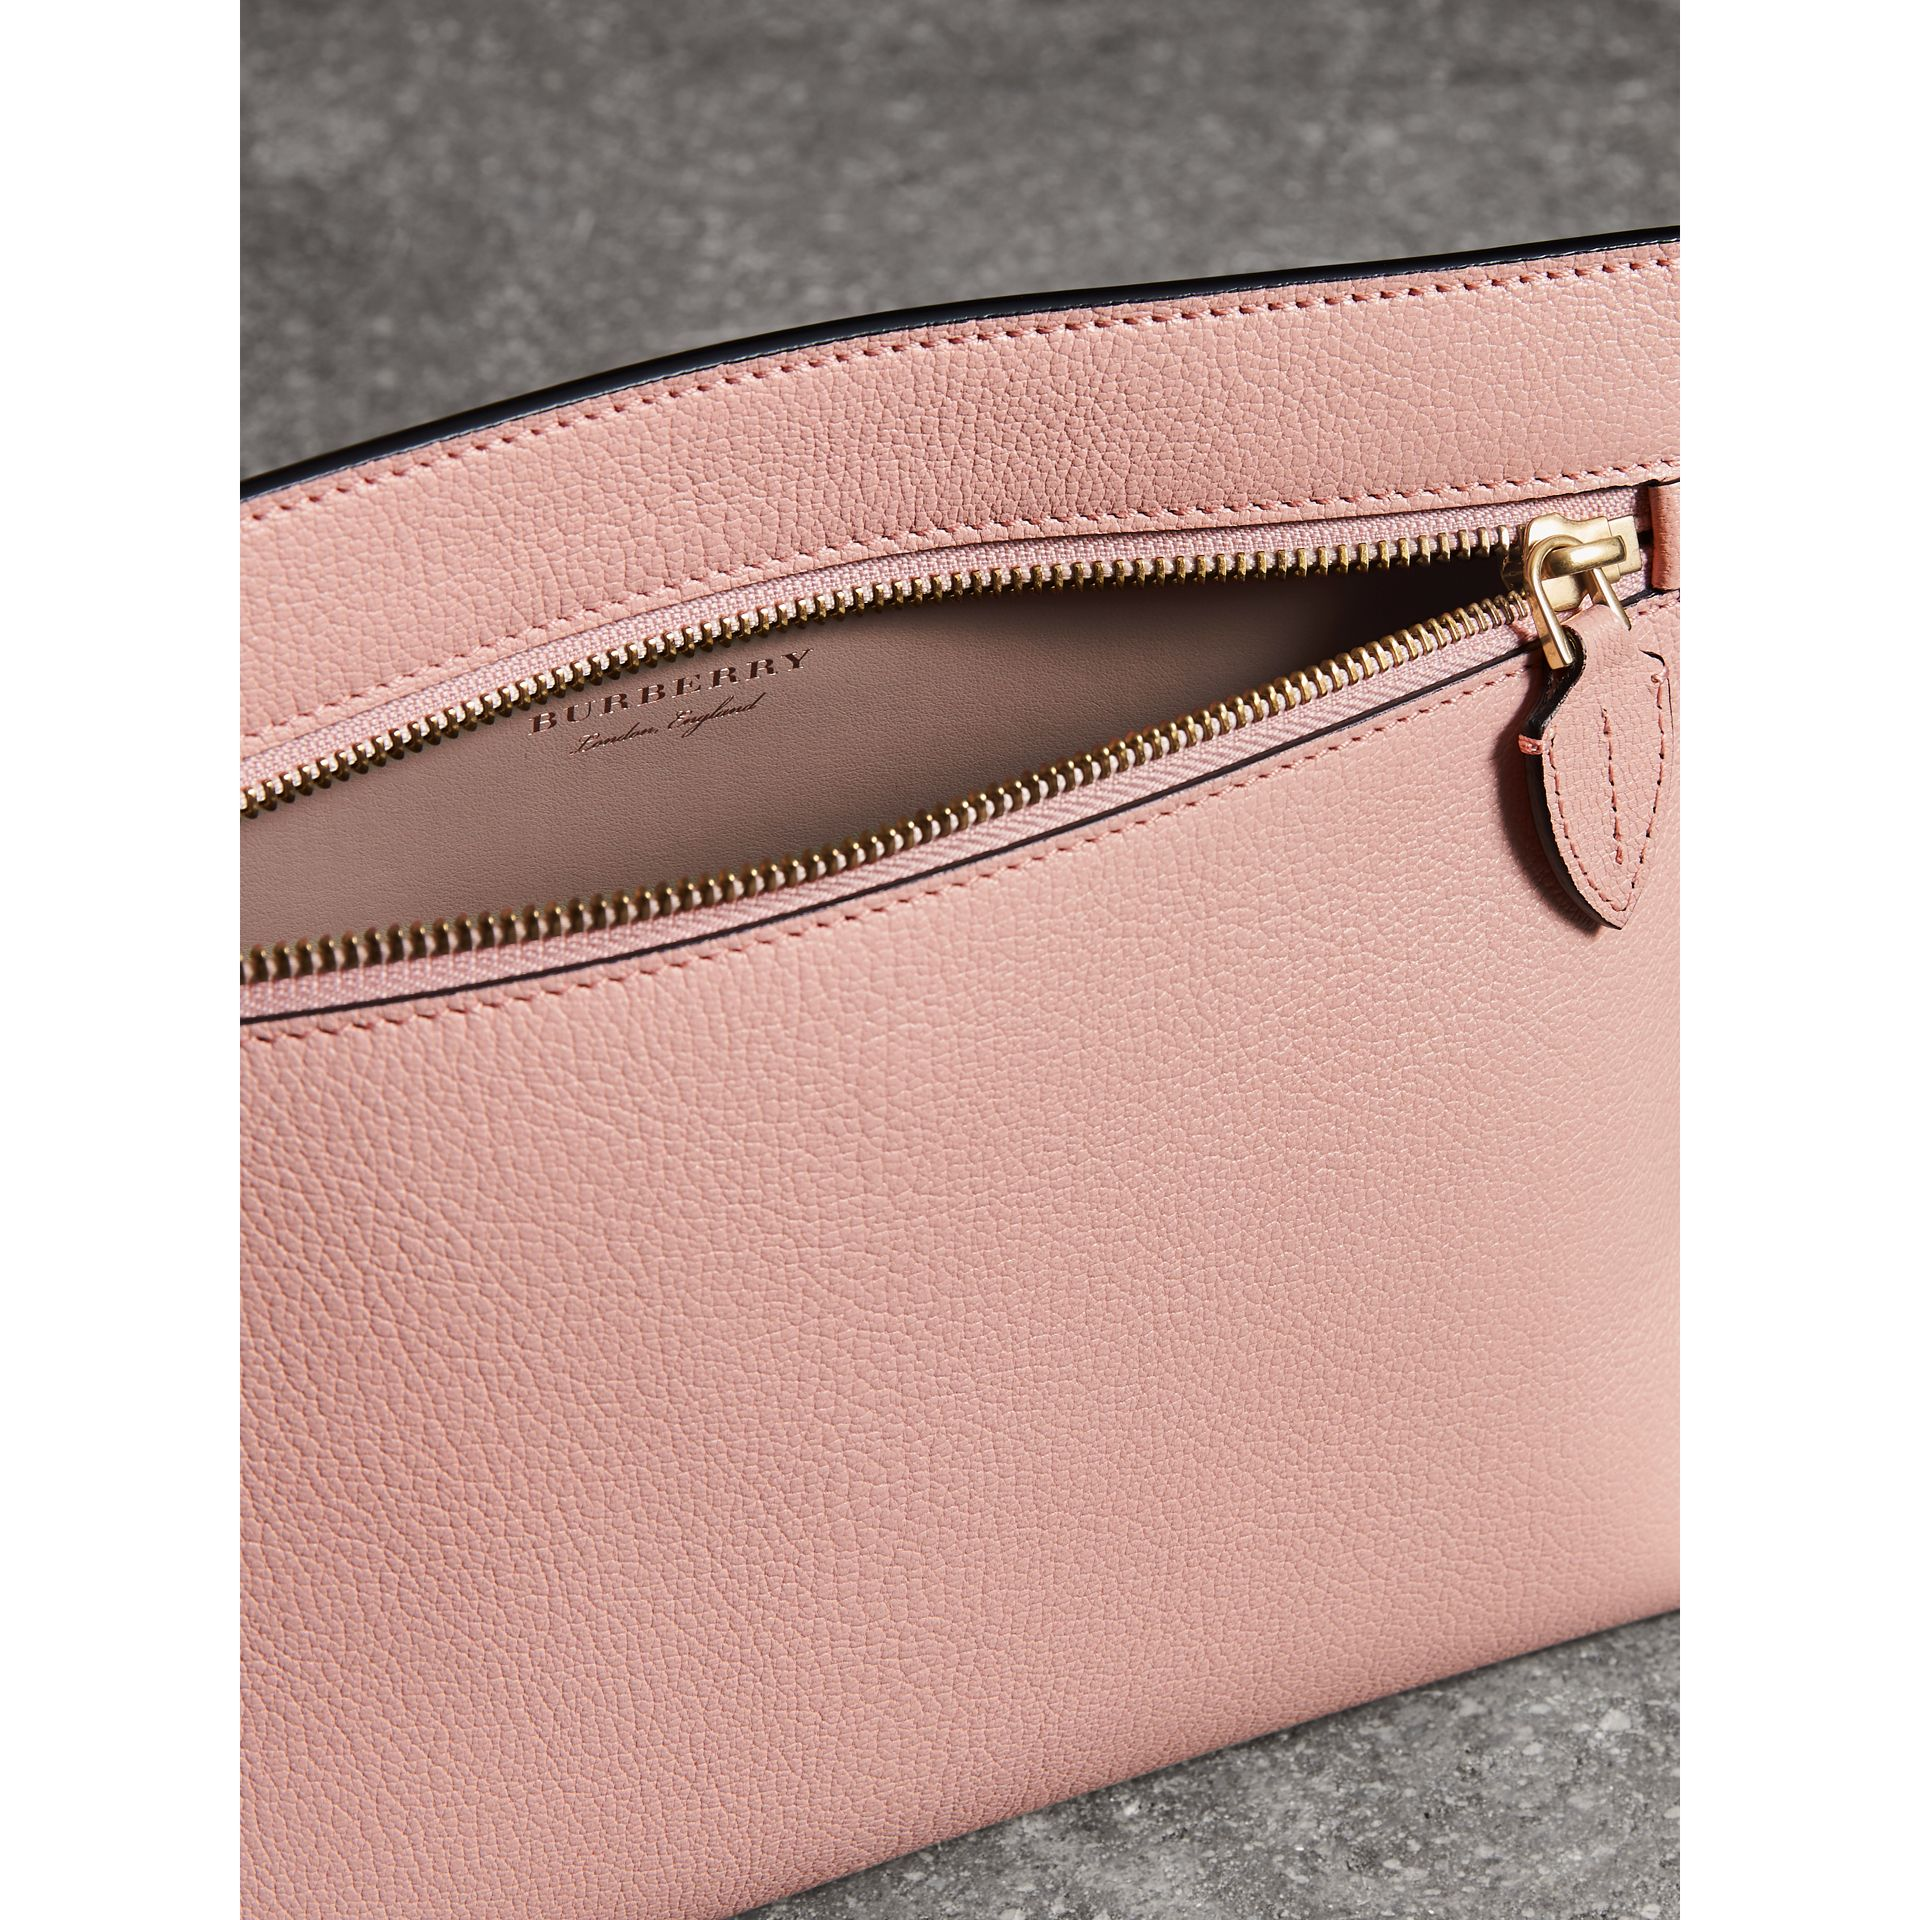 Grainy Leather Wristlet Clutch in Pale Ash Rose - Women | Burberry Hong Kong - gallery image 5